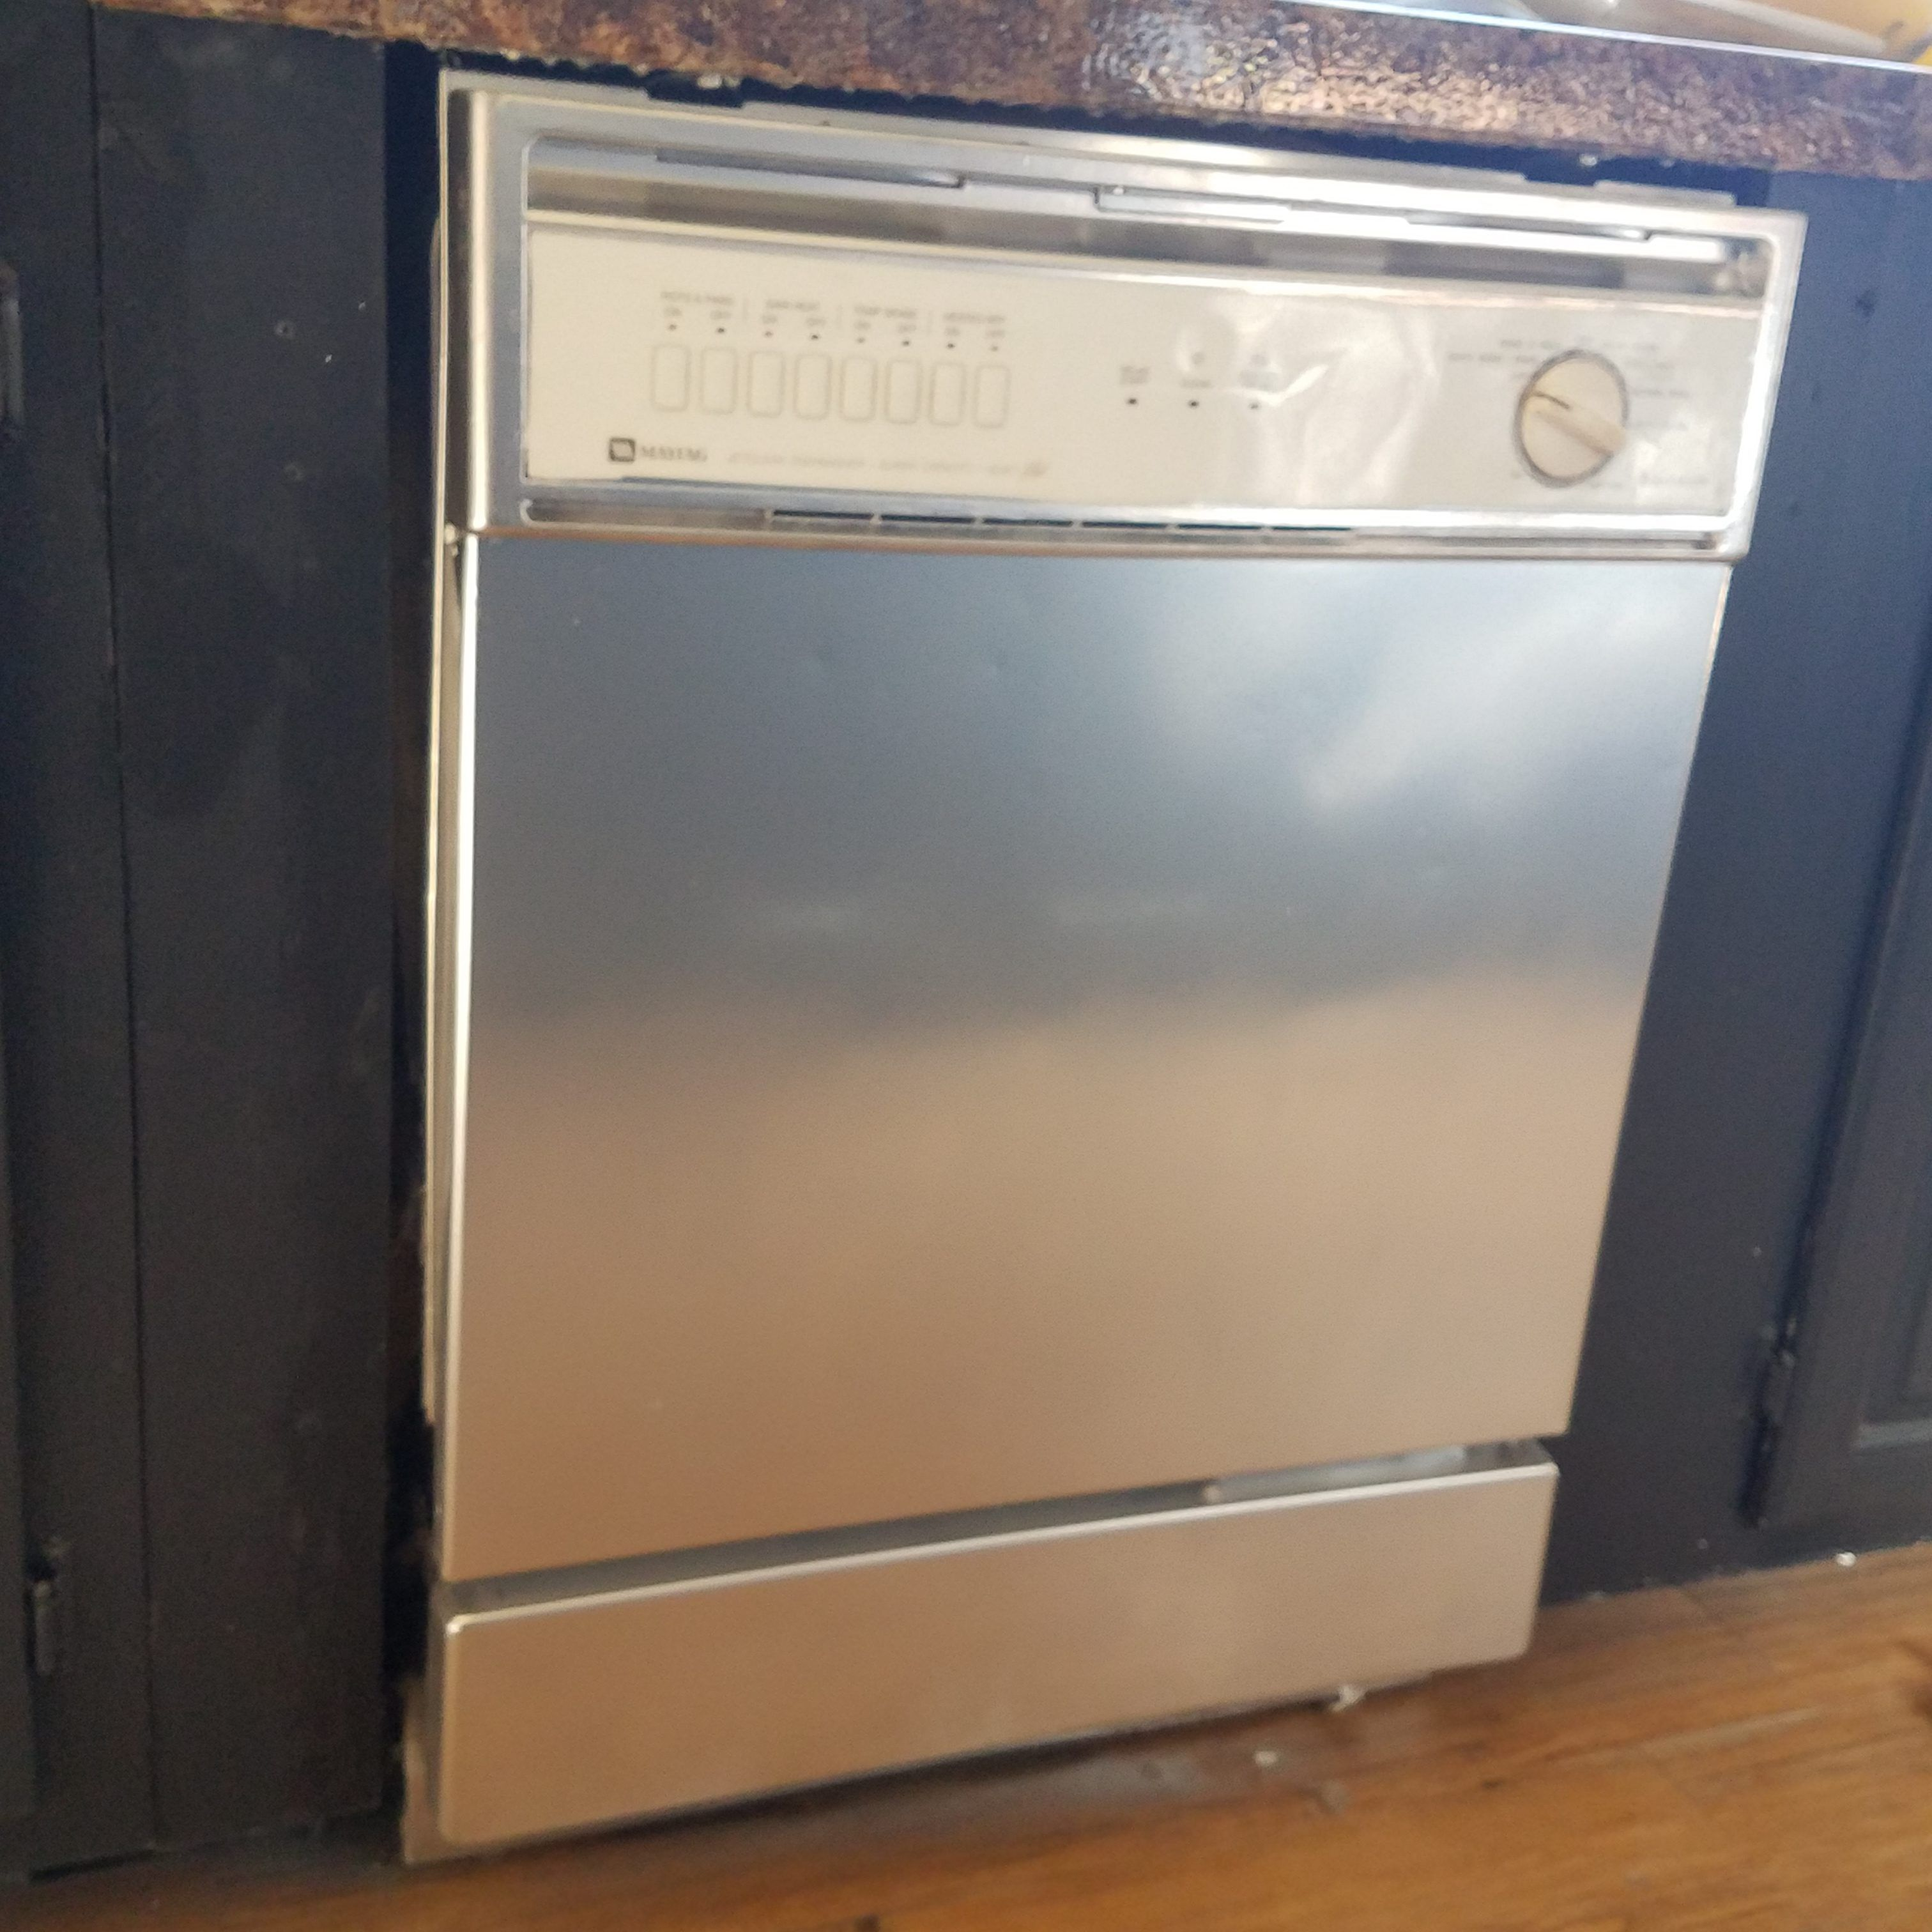 How To Spray Paint A Dishwasher Stainless Steel Cassie Smallwood Stainless Steel Spray Paint Painting Appliances Stainless Steel Dishwasher